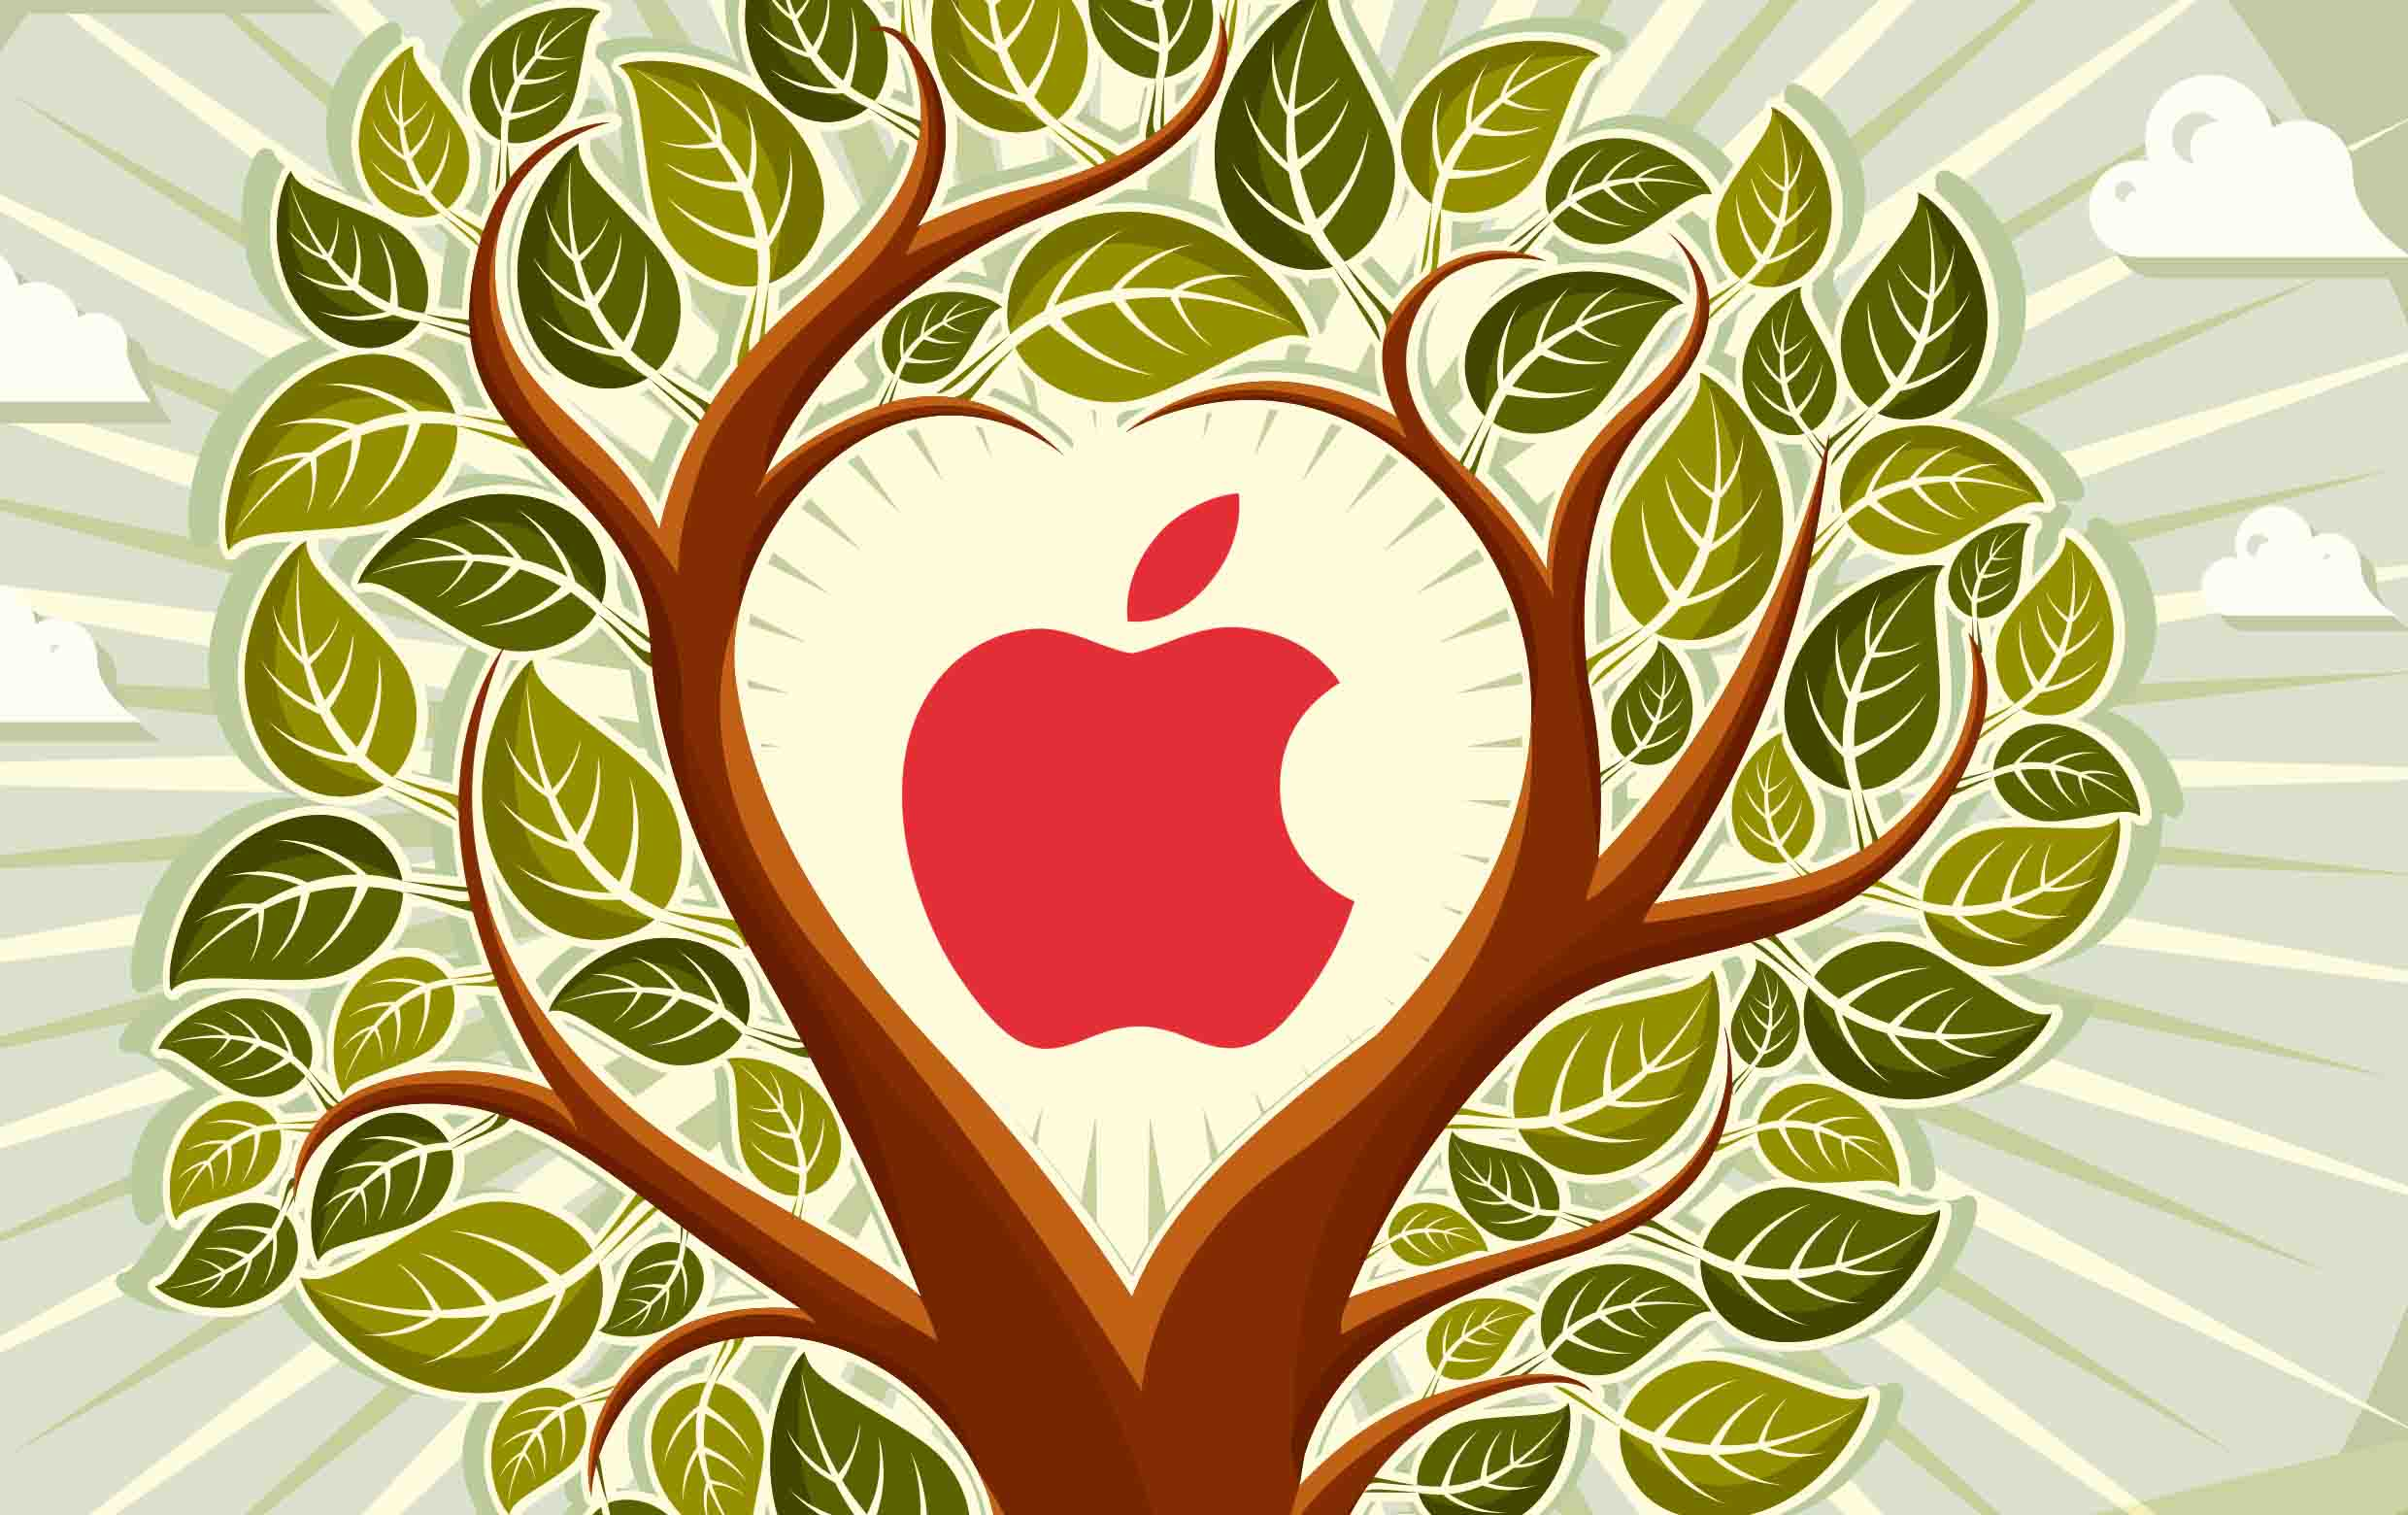 apple, path breaking, updates, iphone 7, technology, september 7, apple, ios, mac, iphone 7, iphone 7 plus, what to buy, new launches